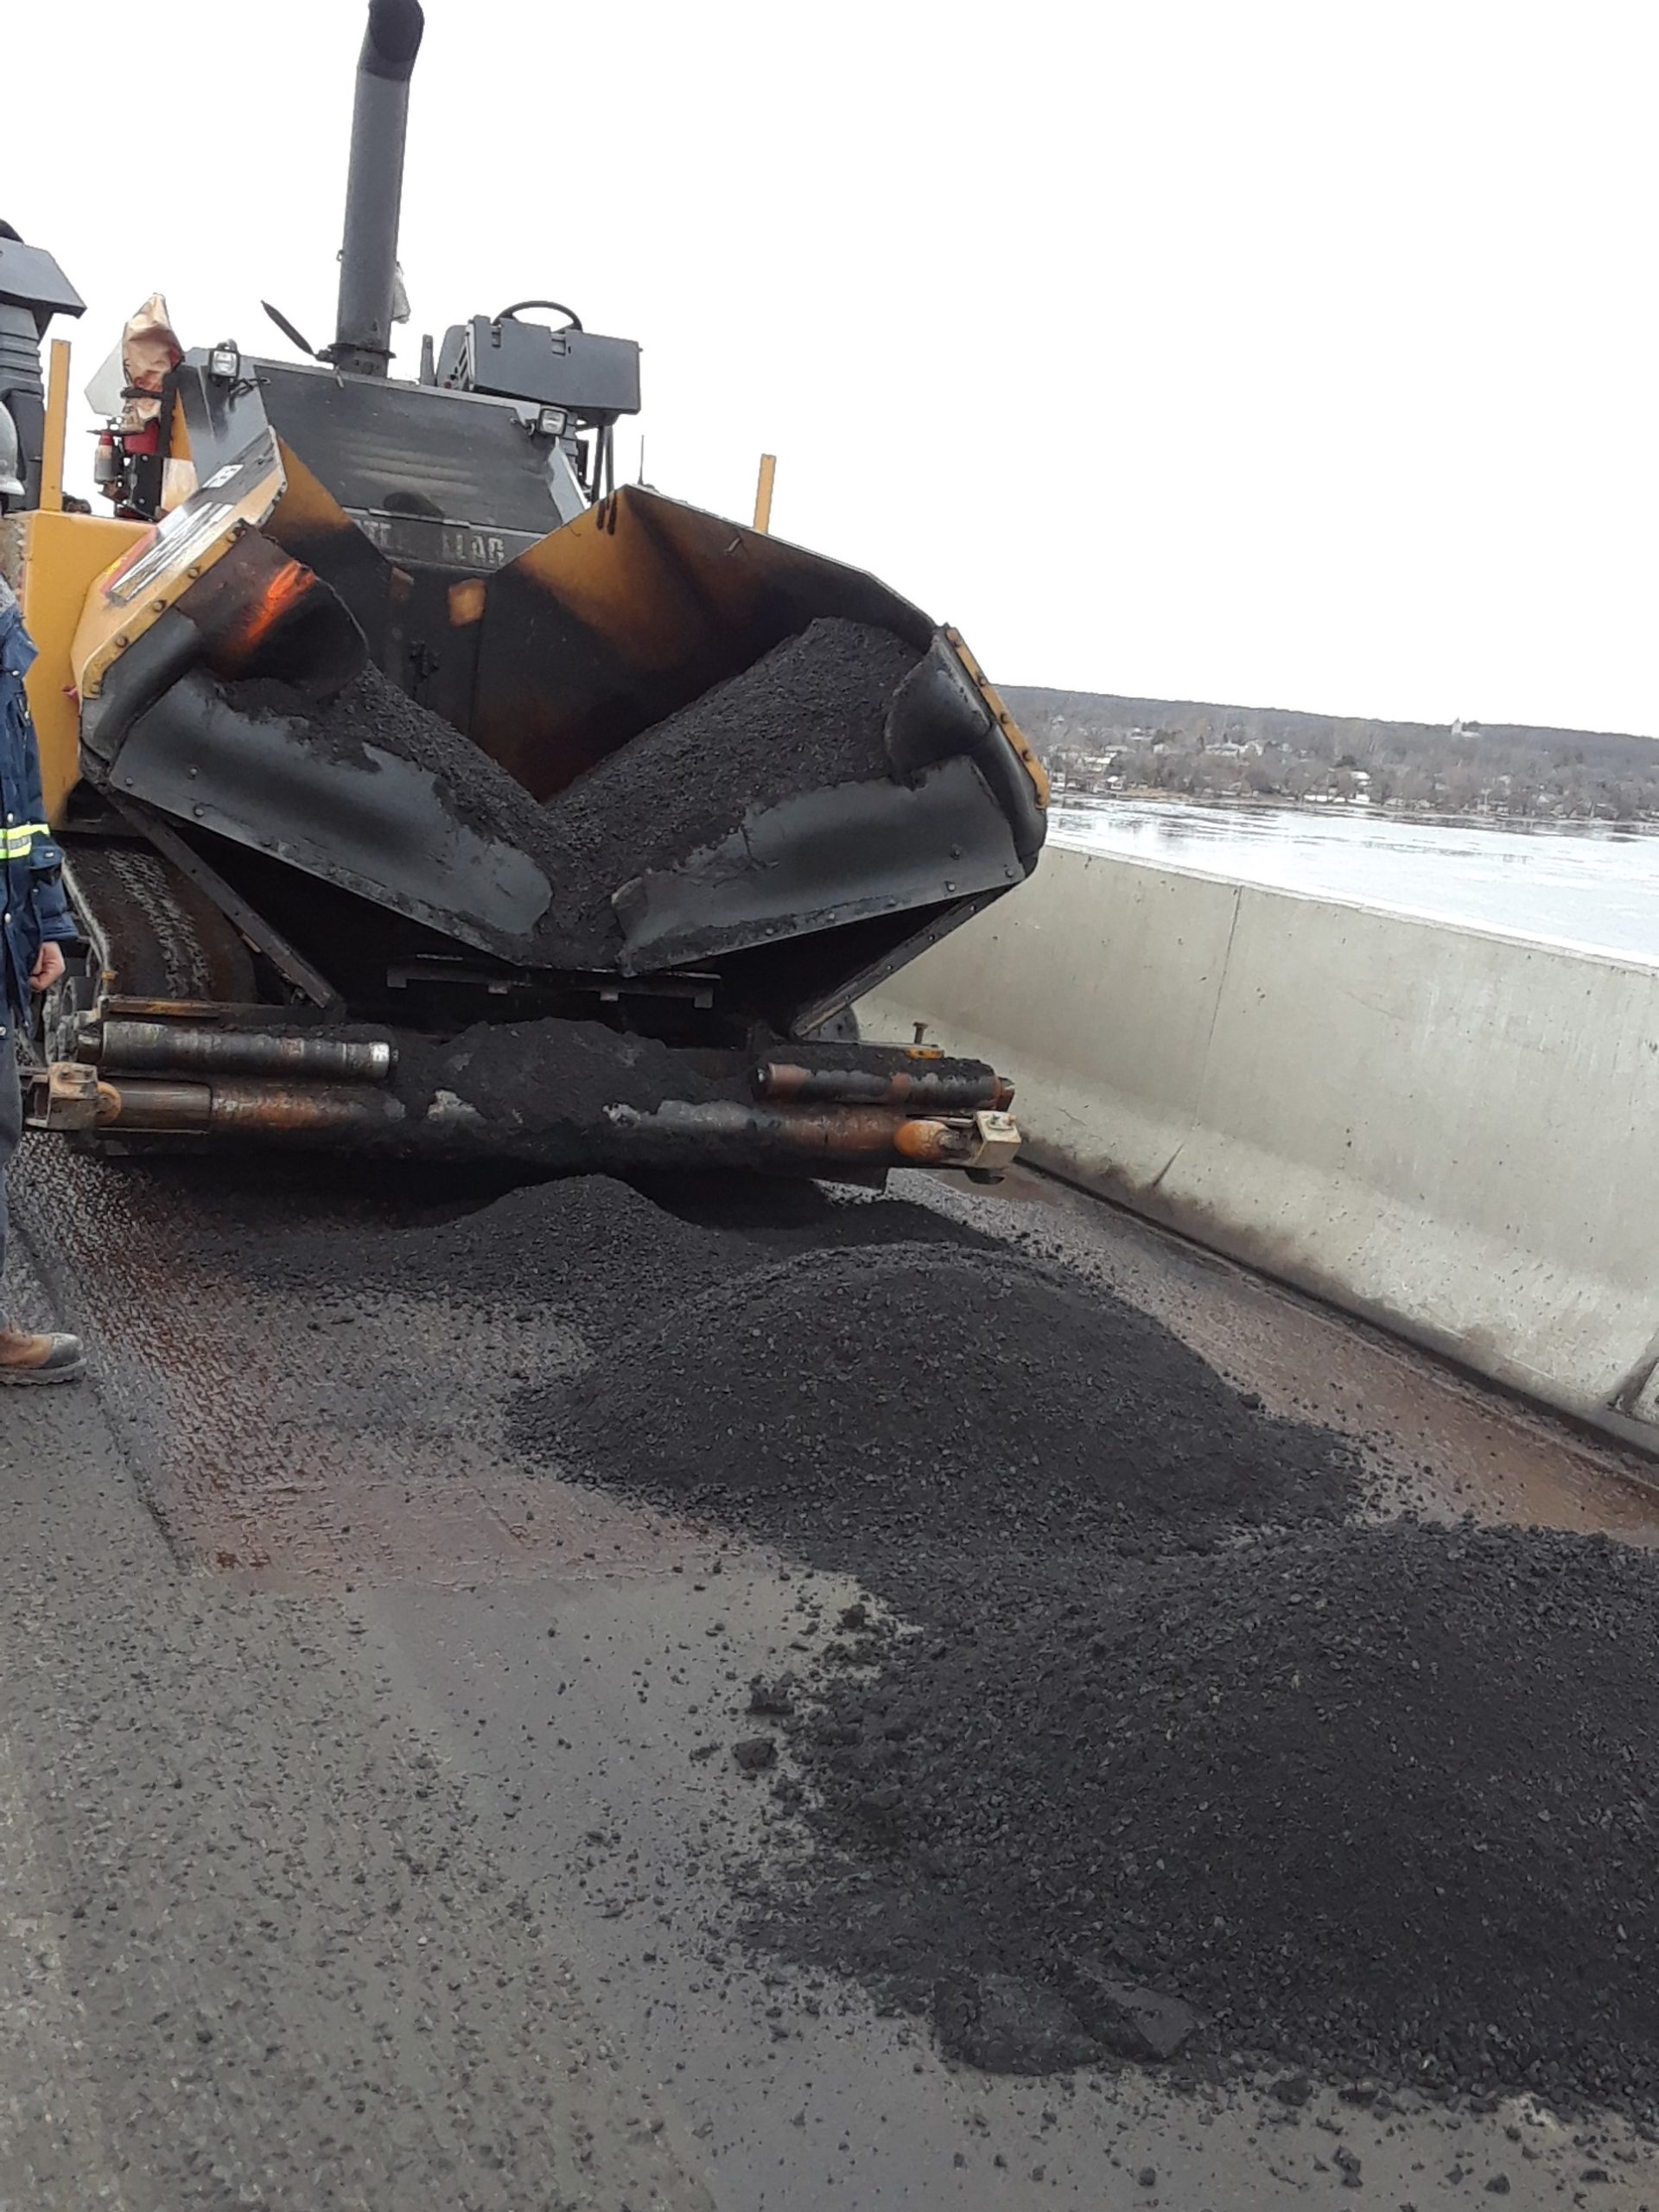 Asphalt being placed